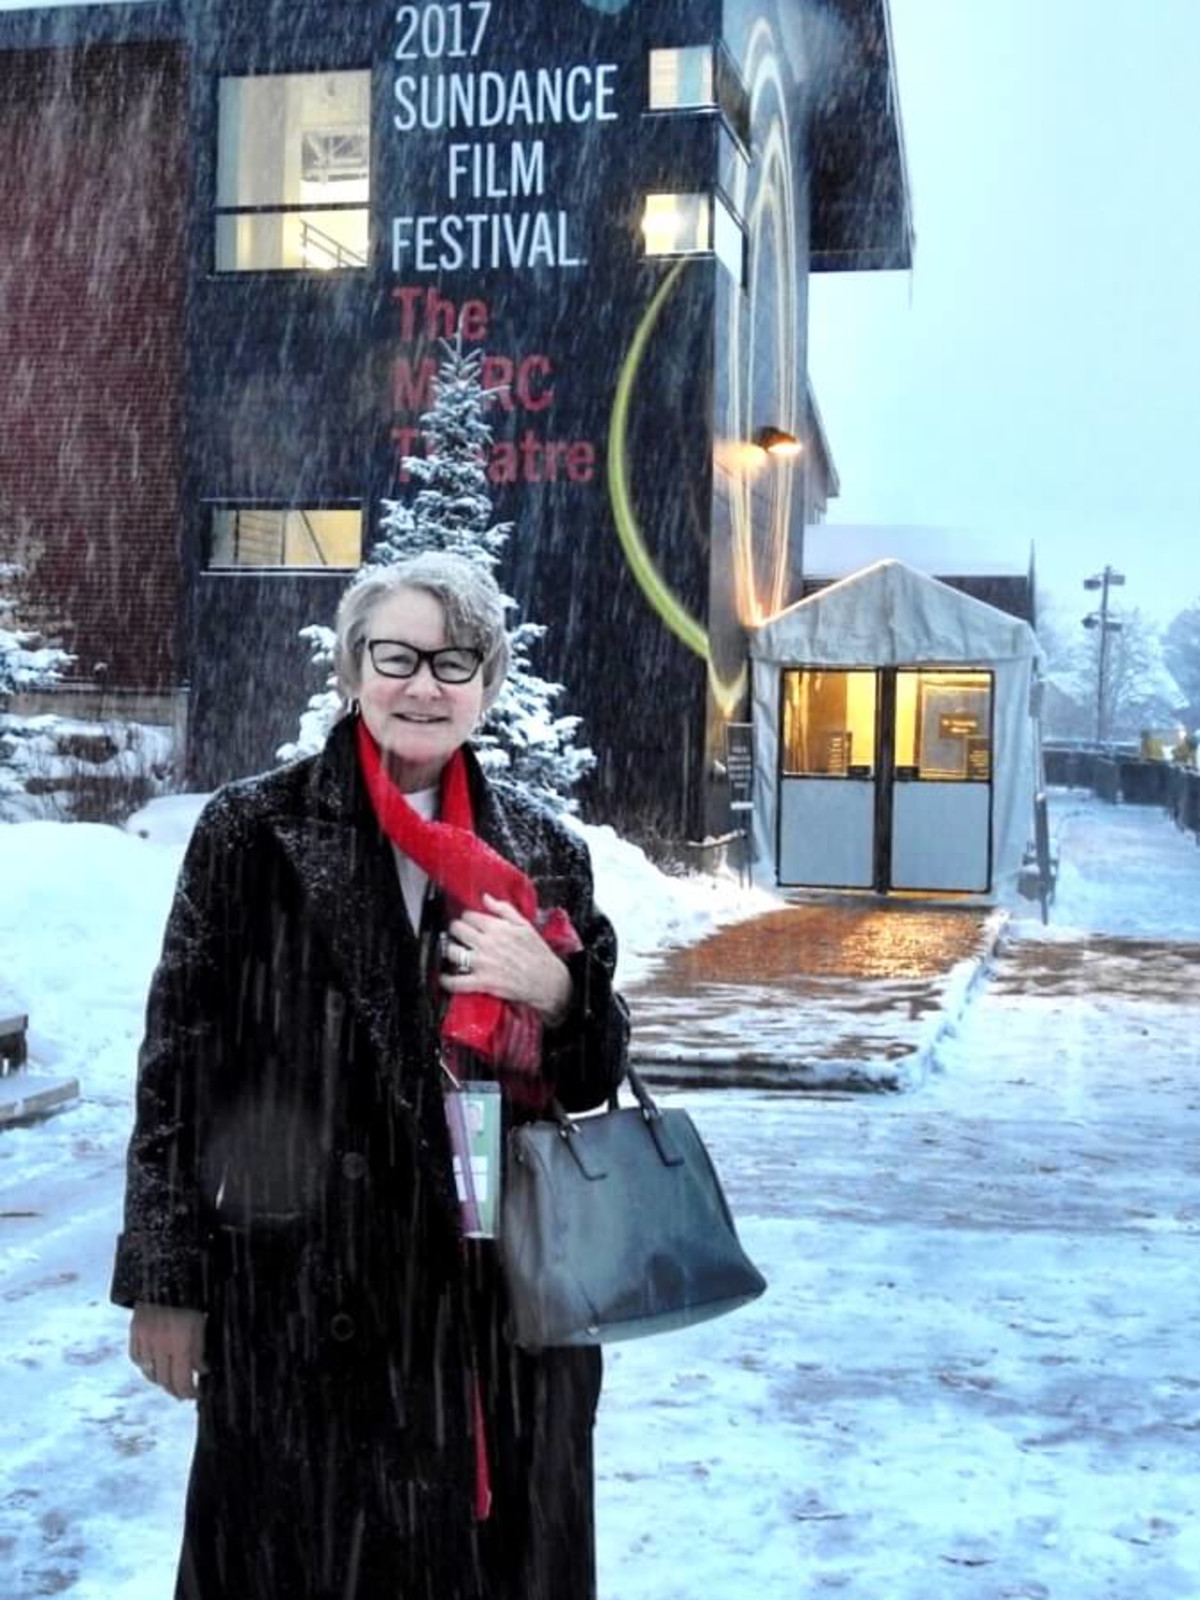 Jane Howze negotiating the unprecedented snowfall the film goers have had to negotiate this week